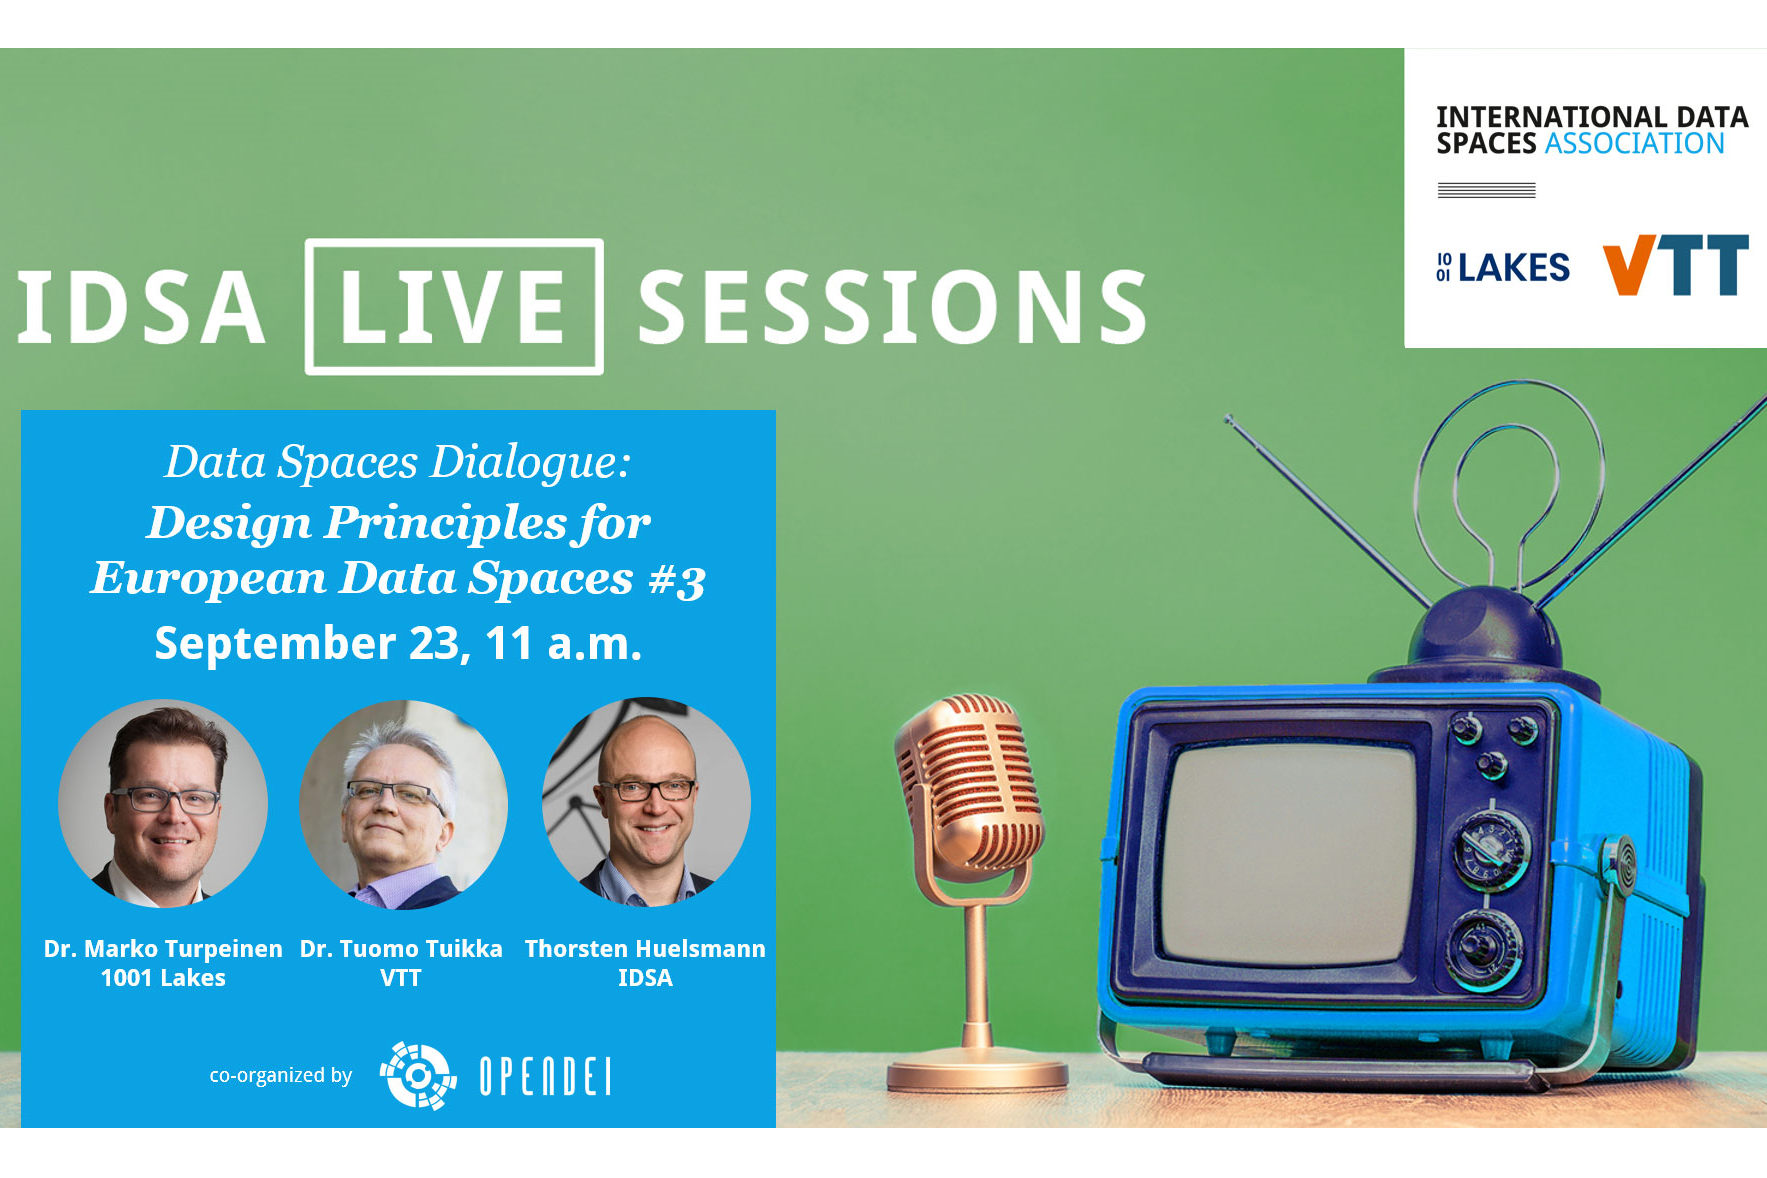 Data Spaces Dialogue: 'Design Principles for European Data Spaces' #3